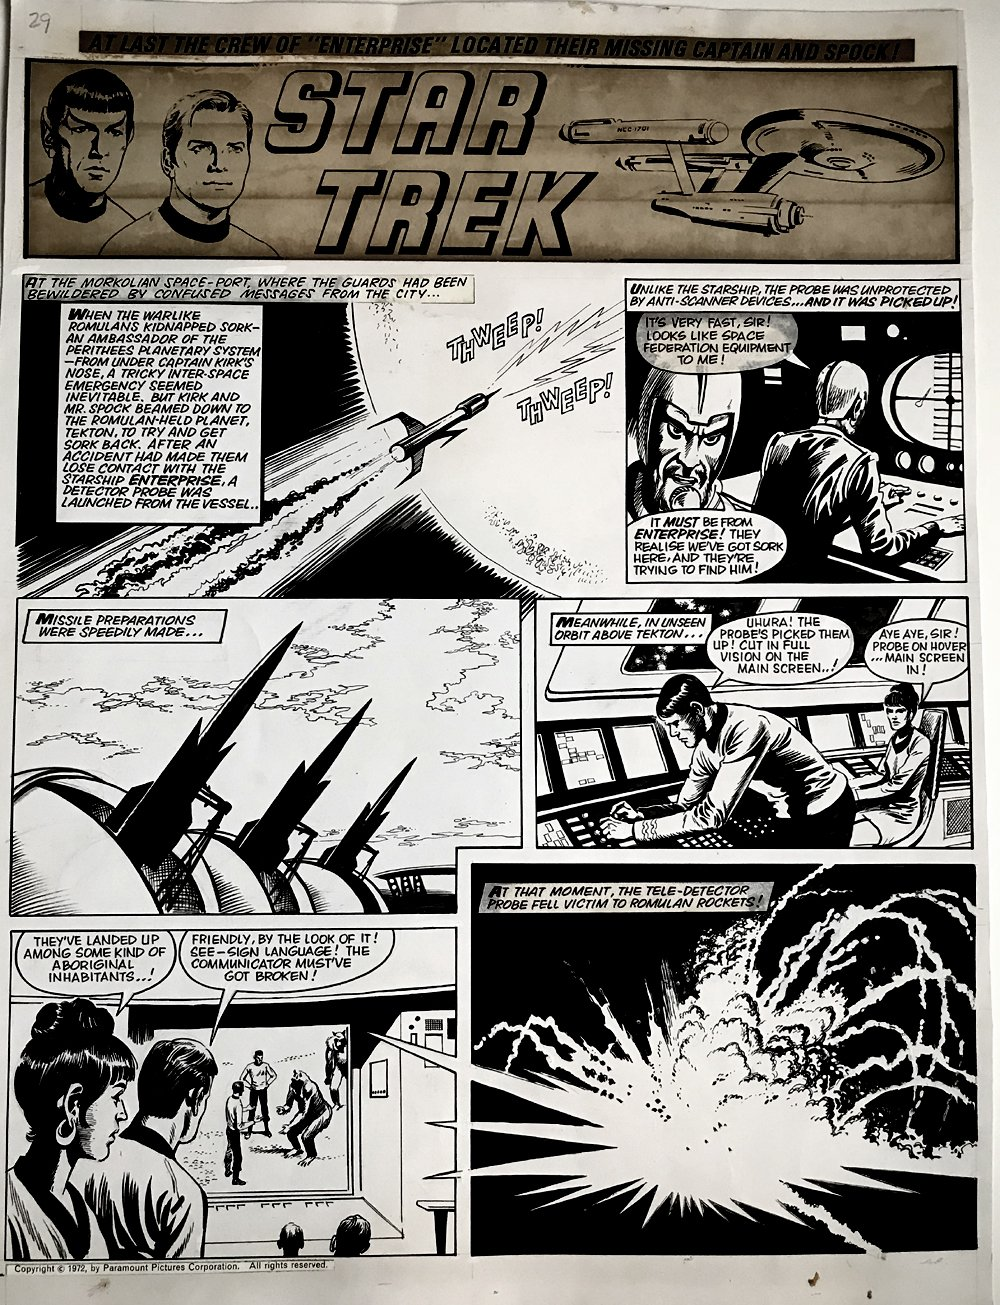 Star Trek Newspaper Strip (HUGE) 9-30-1972